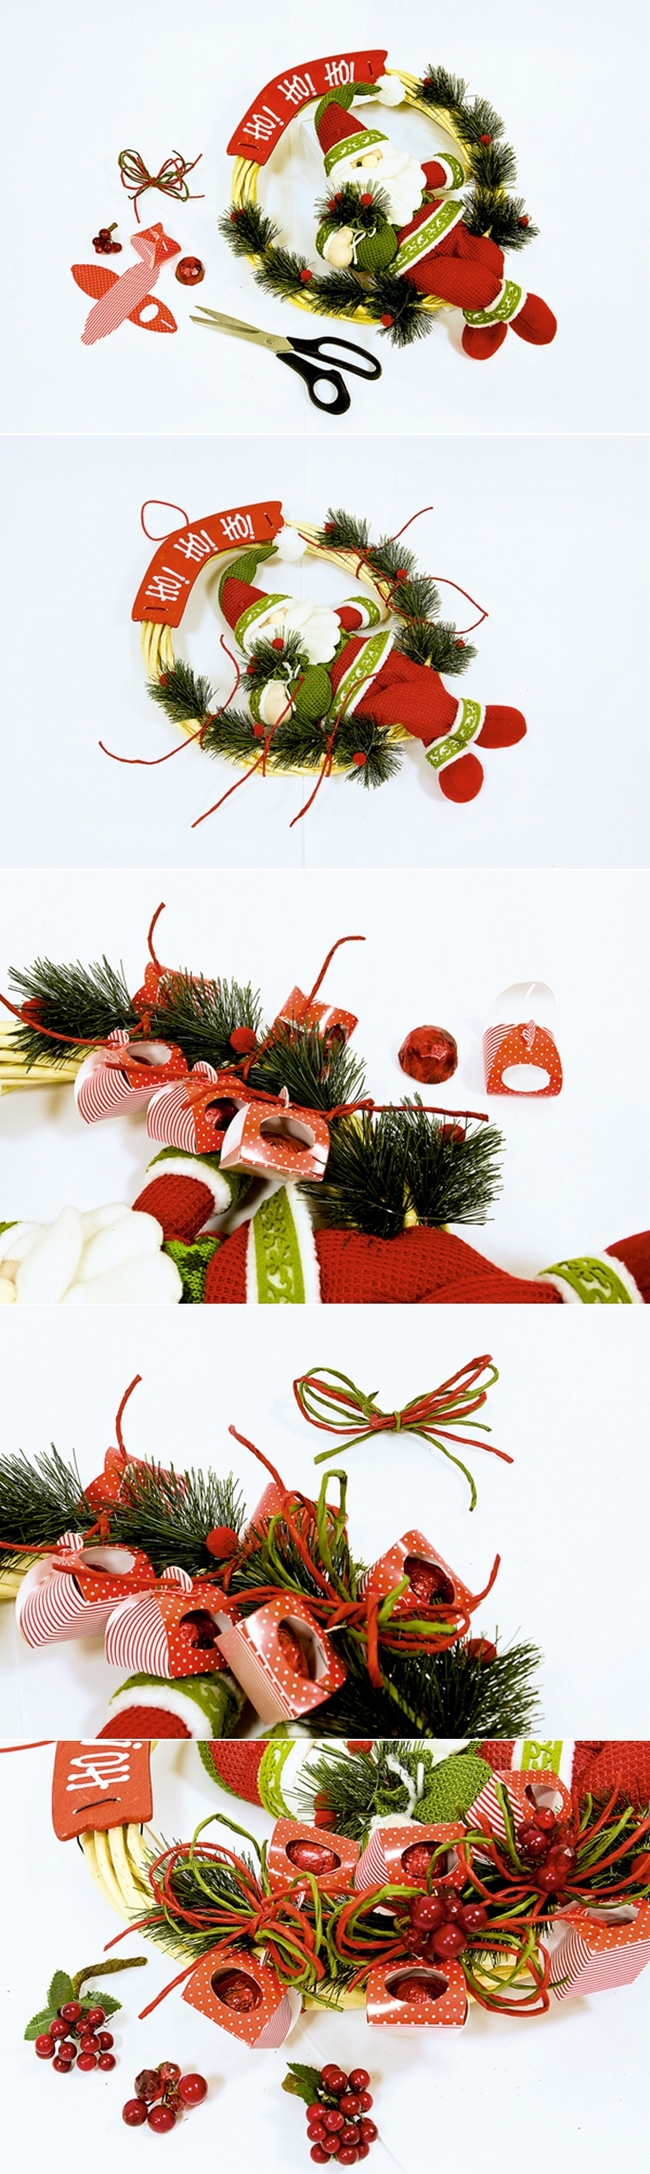 diy-christmas-wreath-santa-doll-red-candy-berries-ribbons